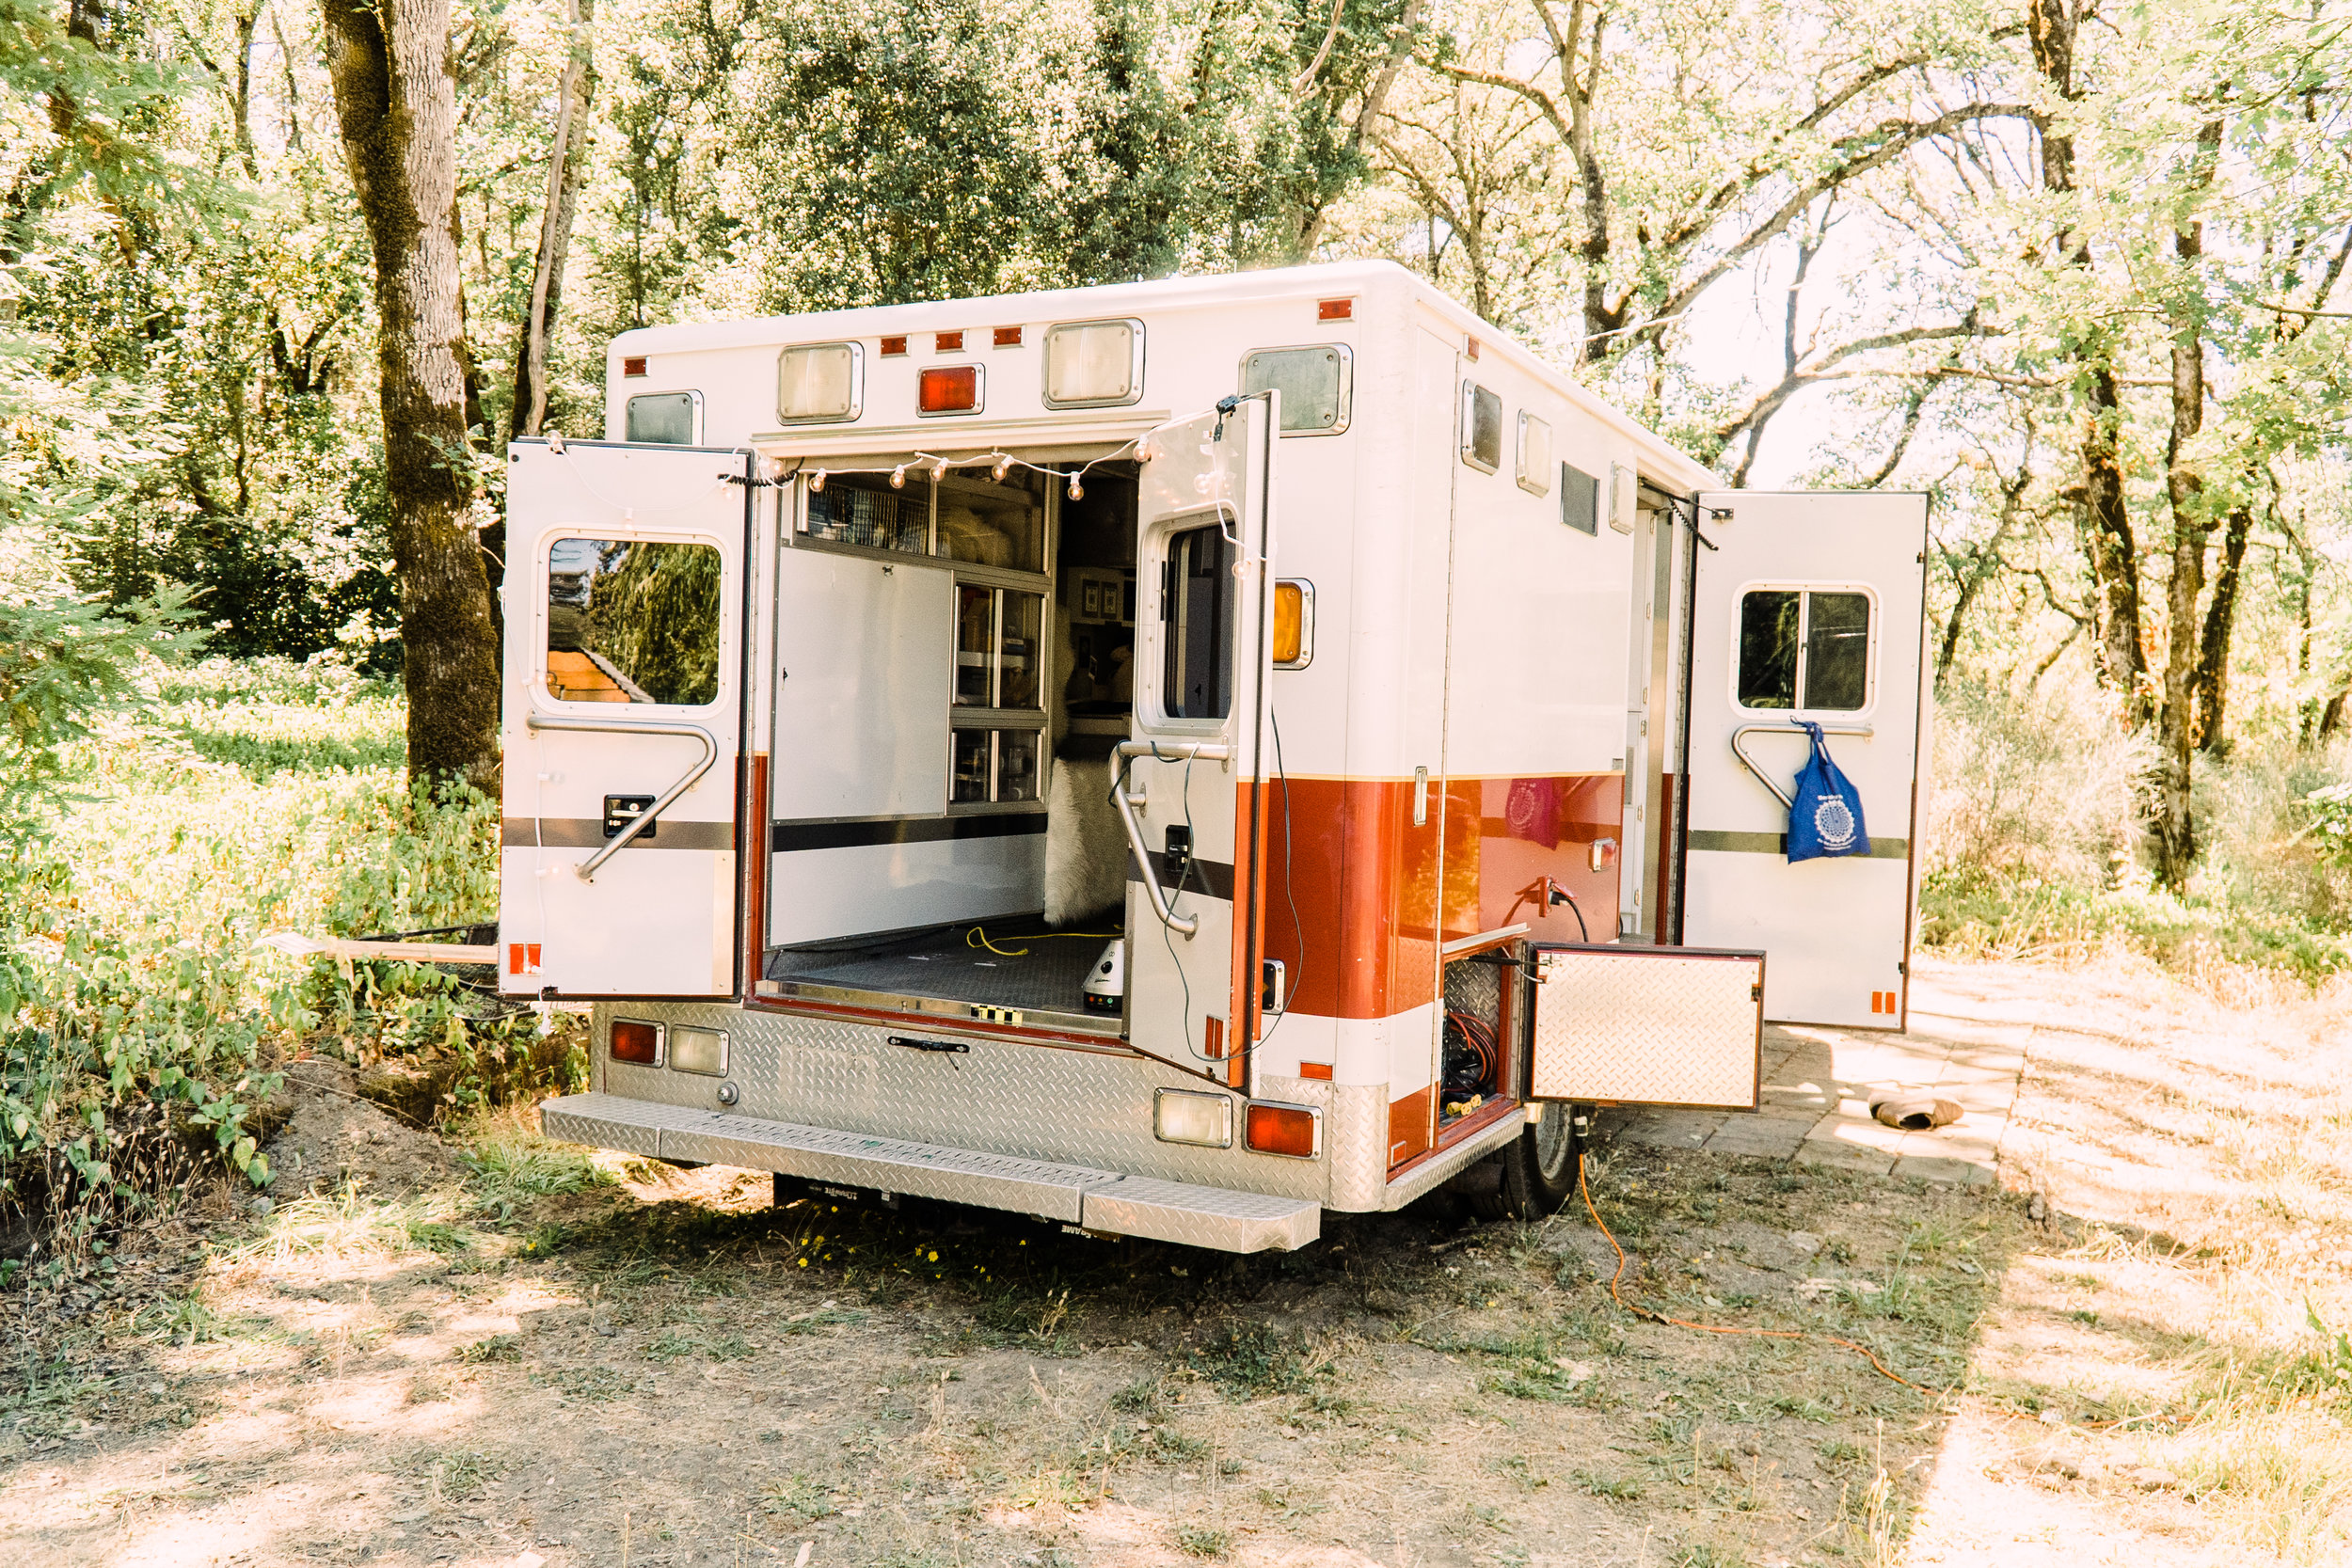 Unique converted Ambulance RV